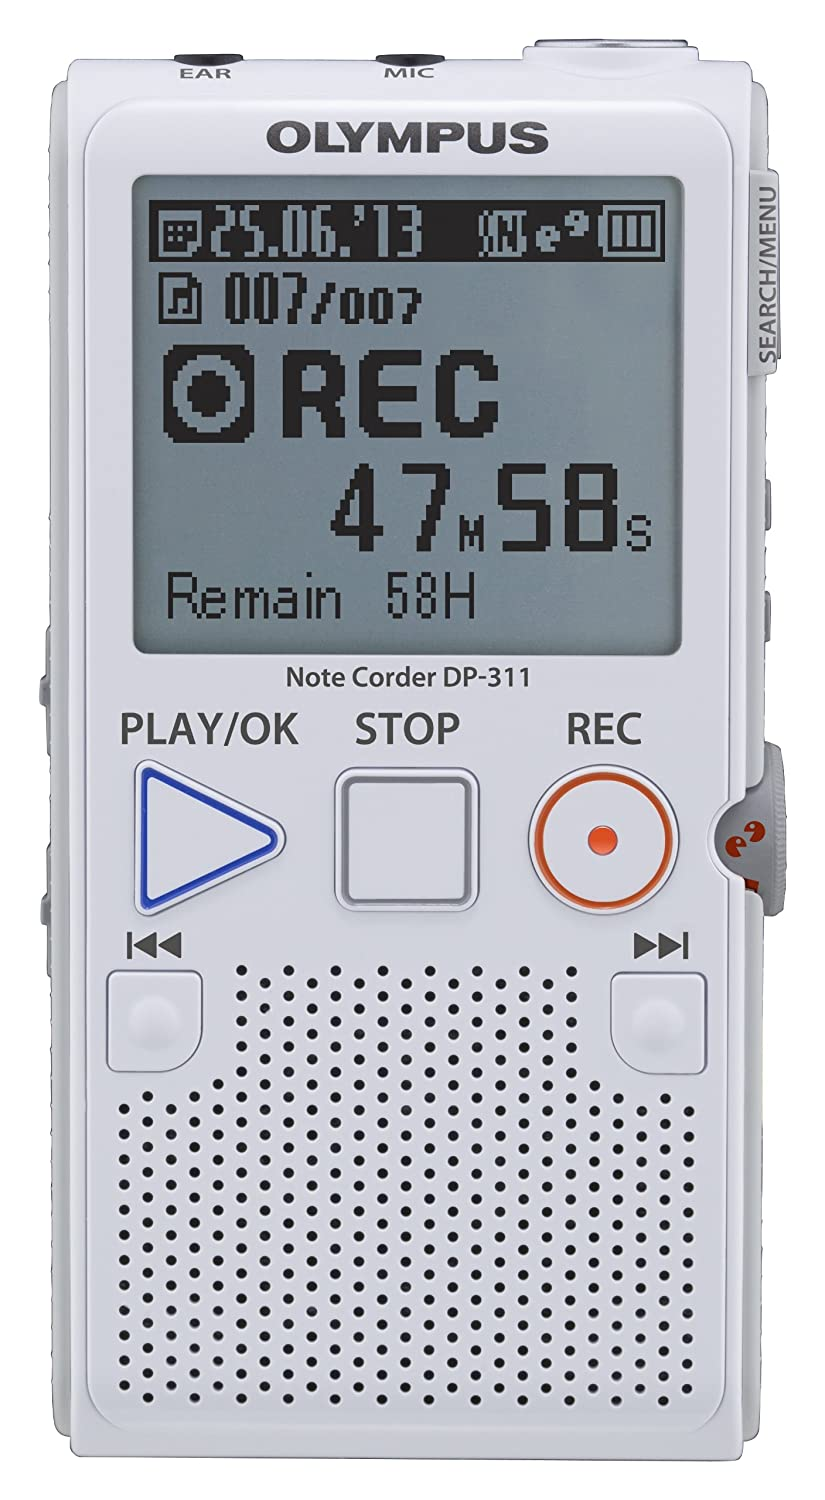 The Best Digital Voice Recorder Reviews & Buying Guide 3